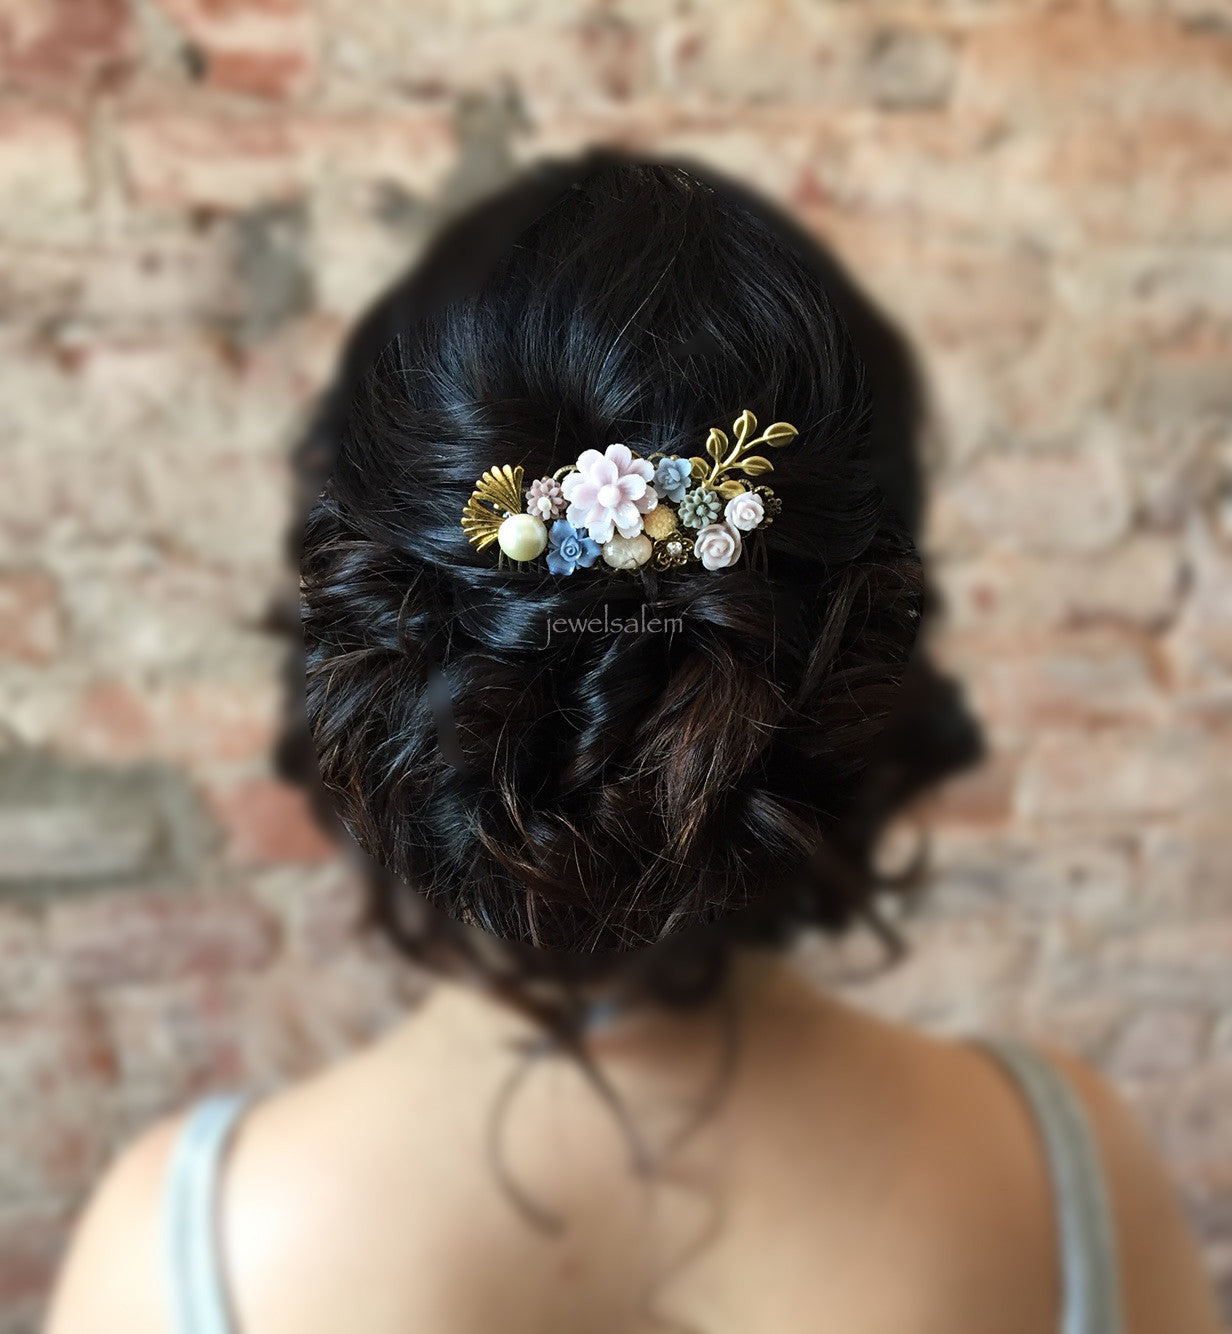 Personalised Wedding Hair Comb Customised Bridal Comb Hair Accessories For Bride Made to Order Hair Slide - Jewelsalem